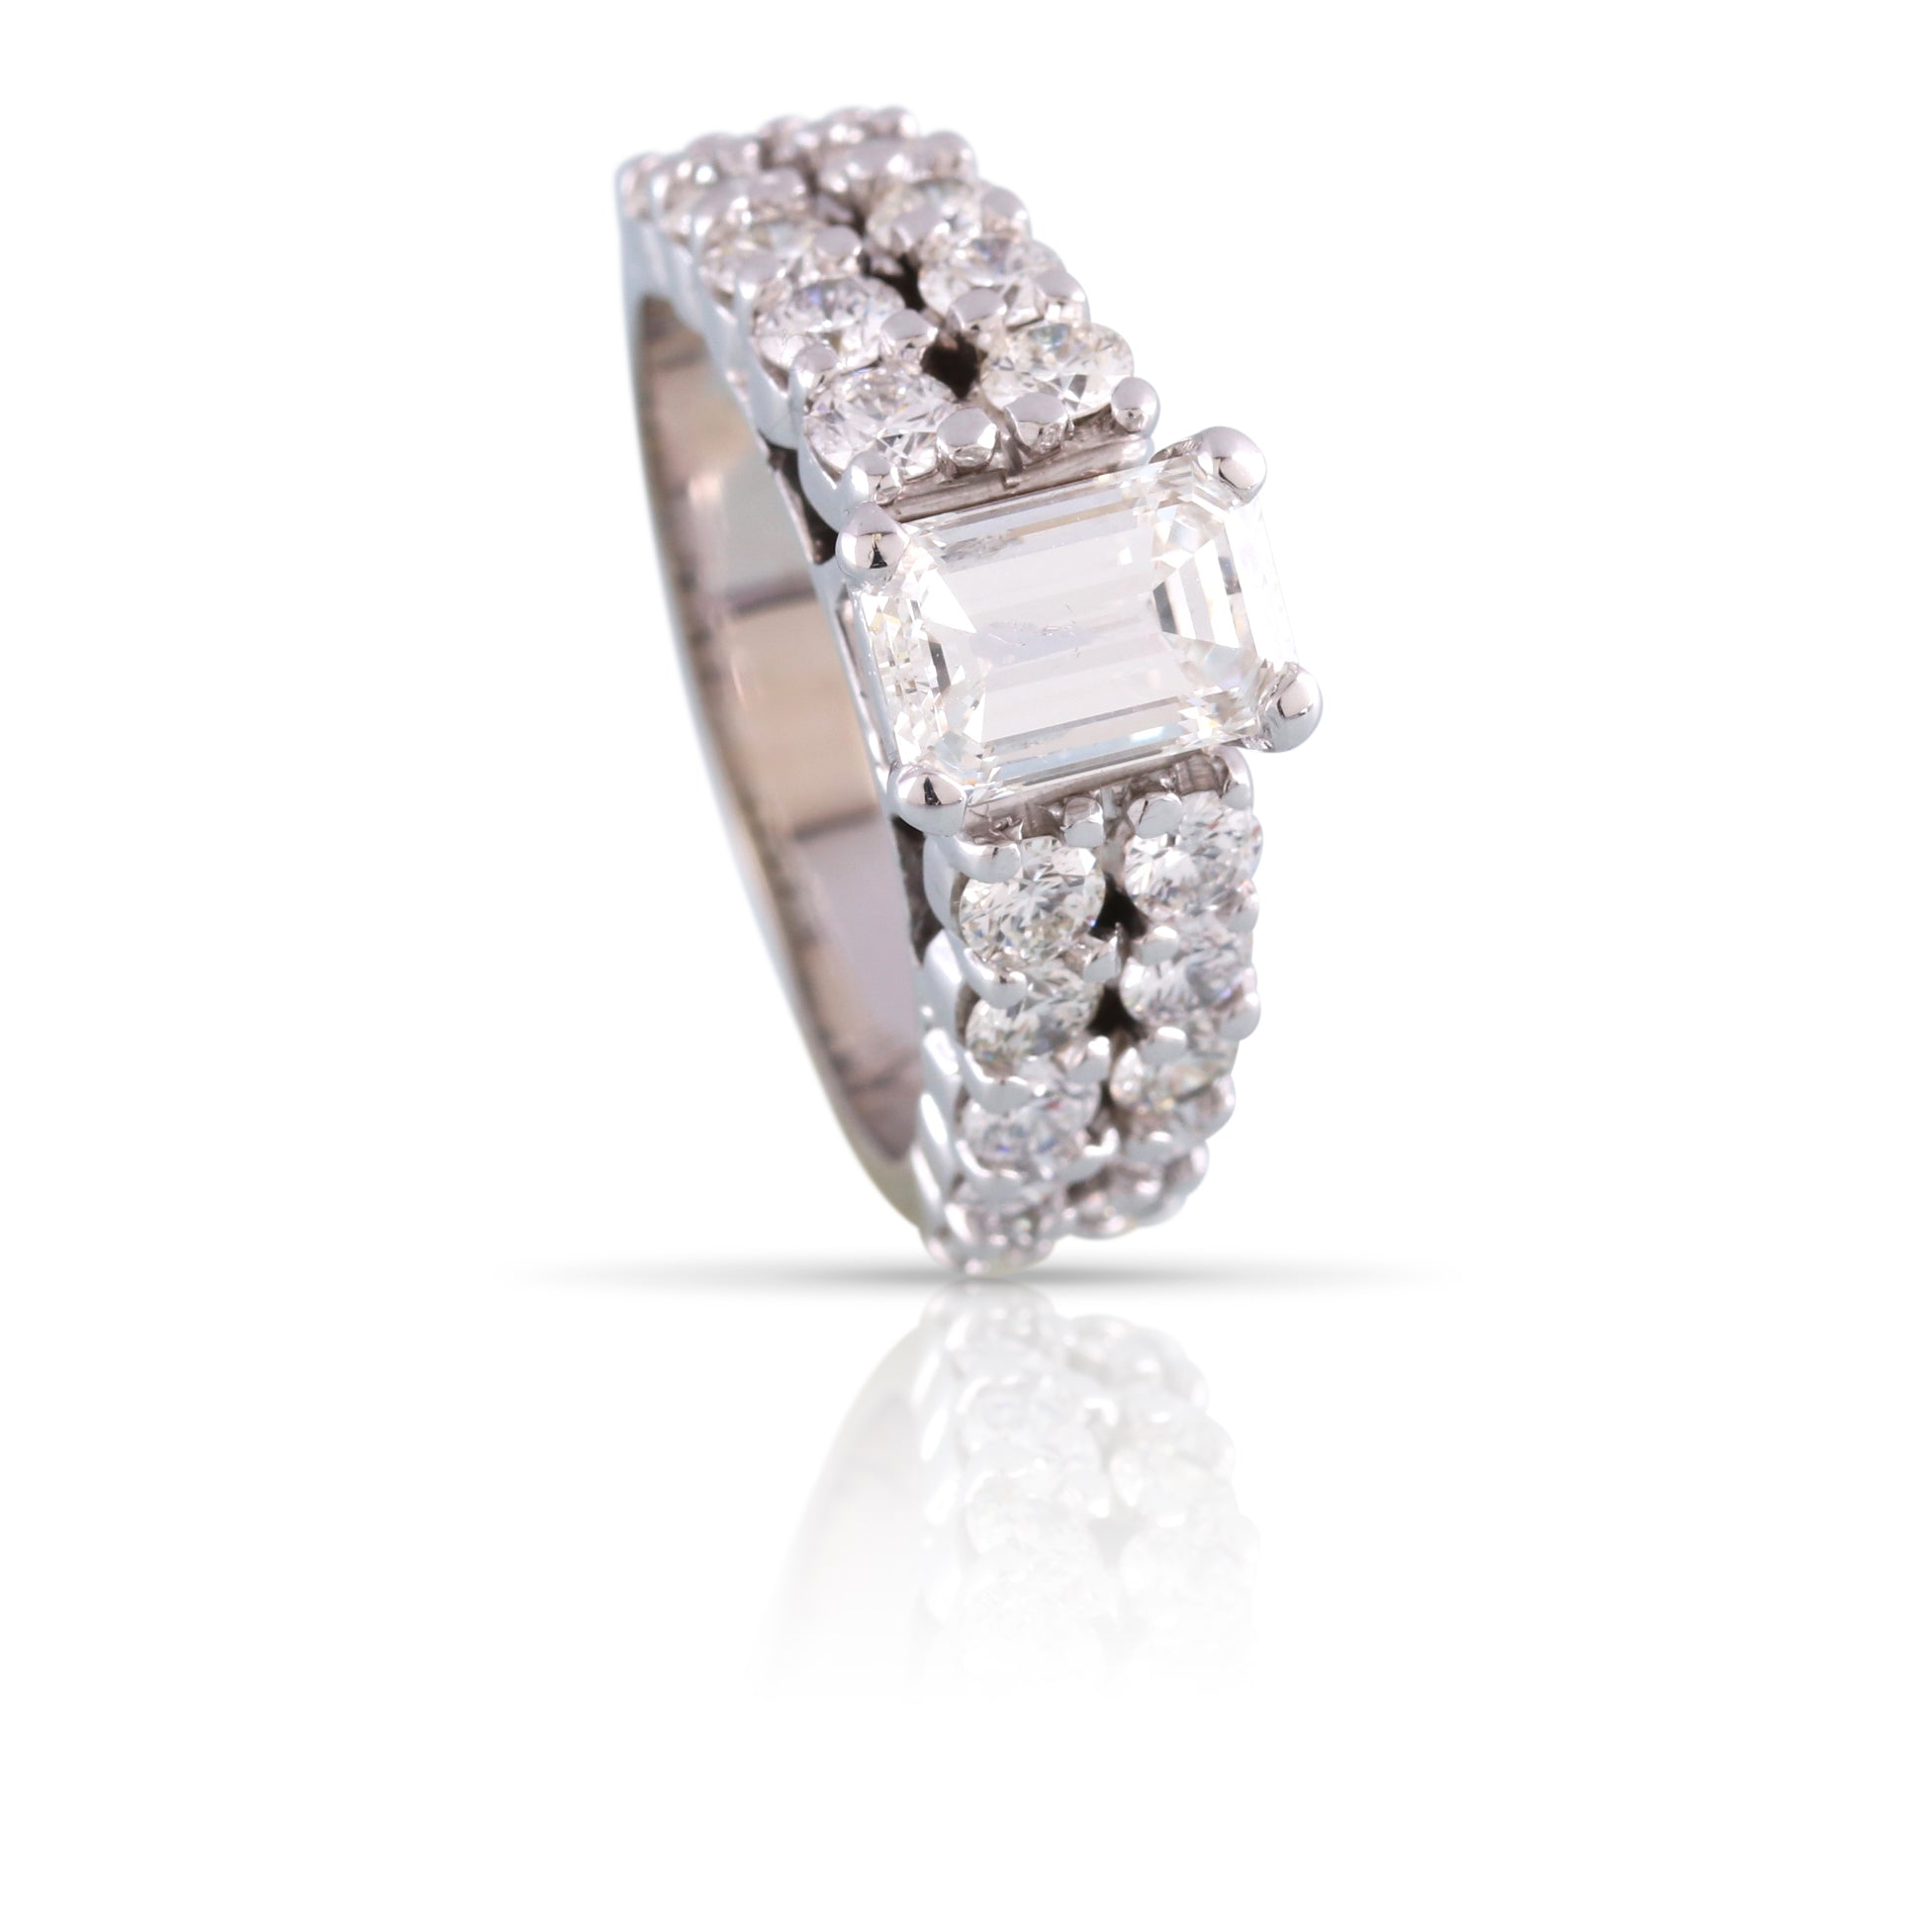 Emerald Cut Diamond Ring | The Primrose